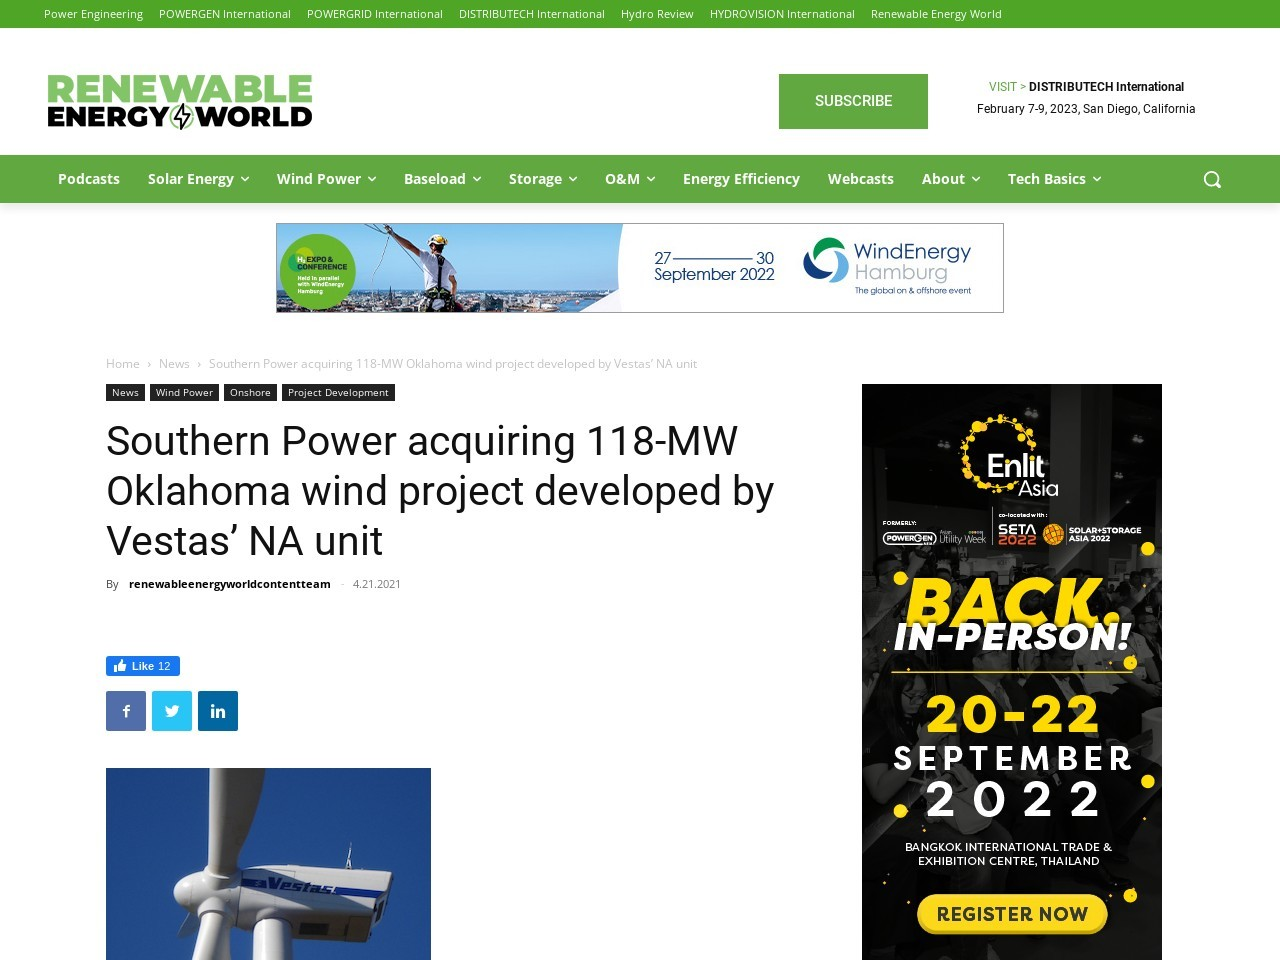 Southern Power acquiring 118-MW Oklahoma wind project developed by Vestas' NA unit